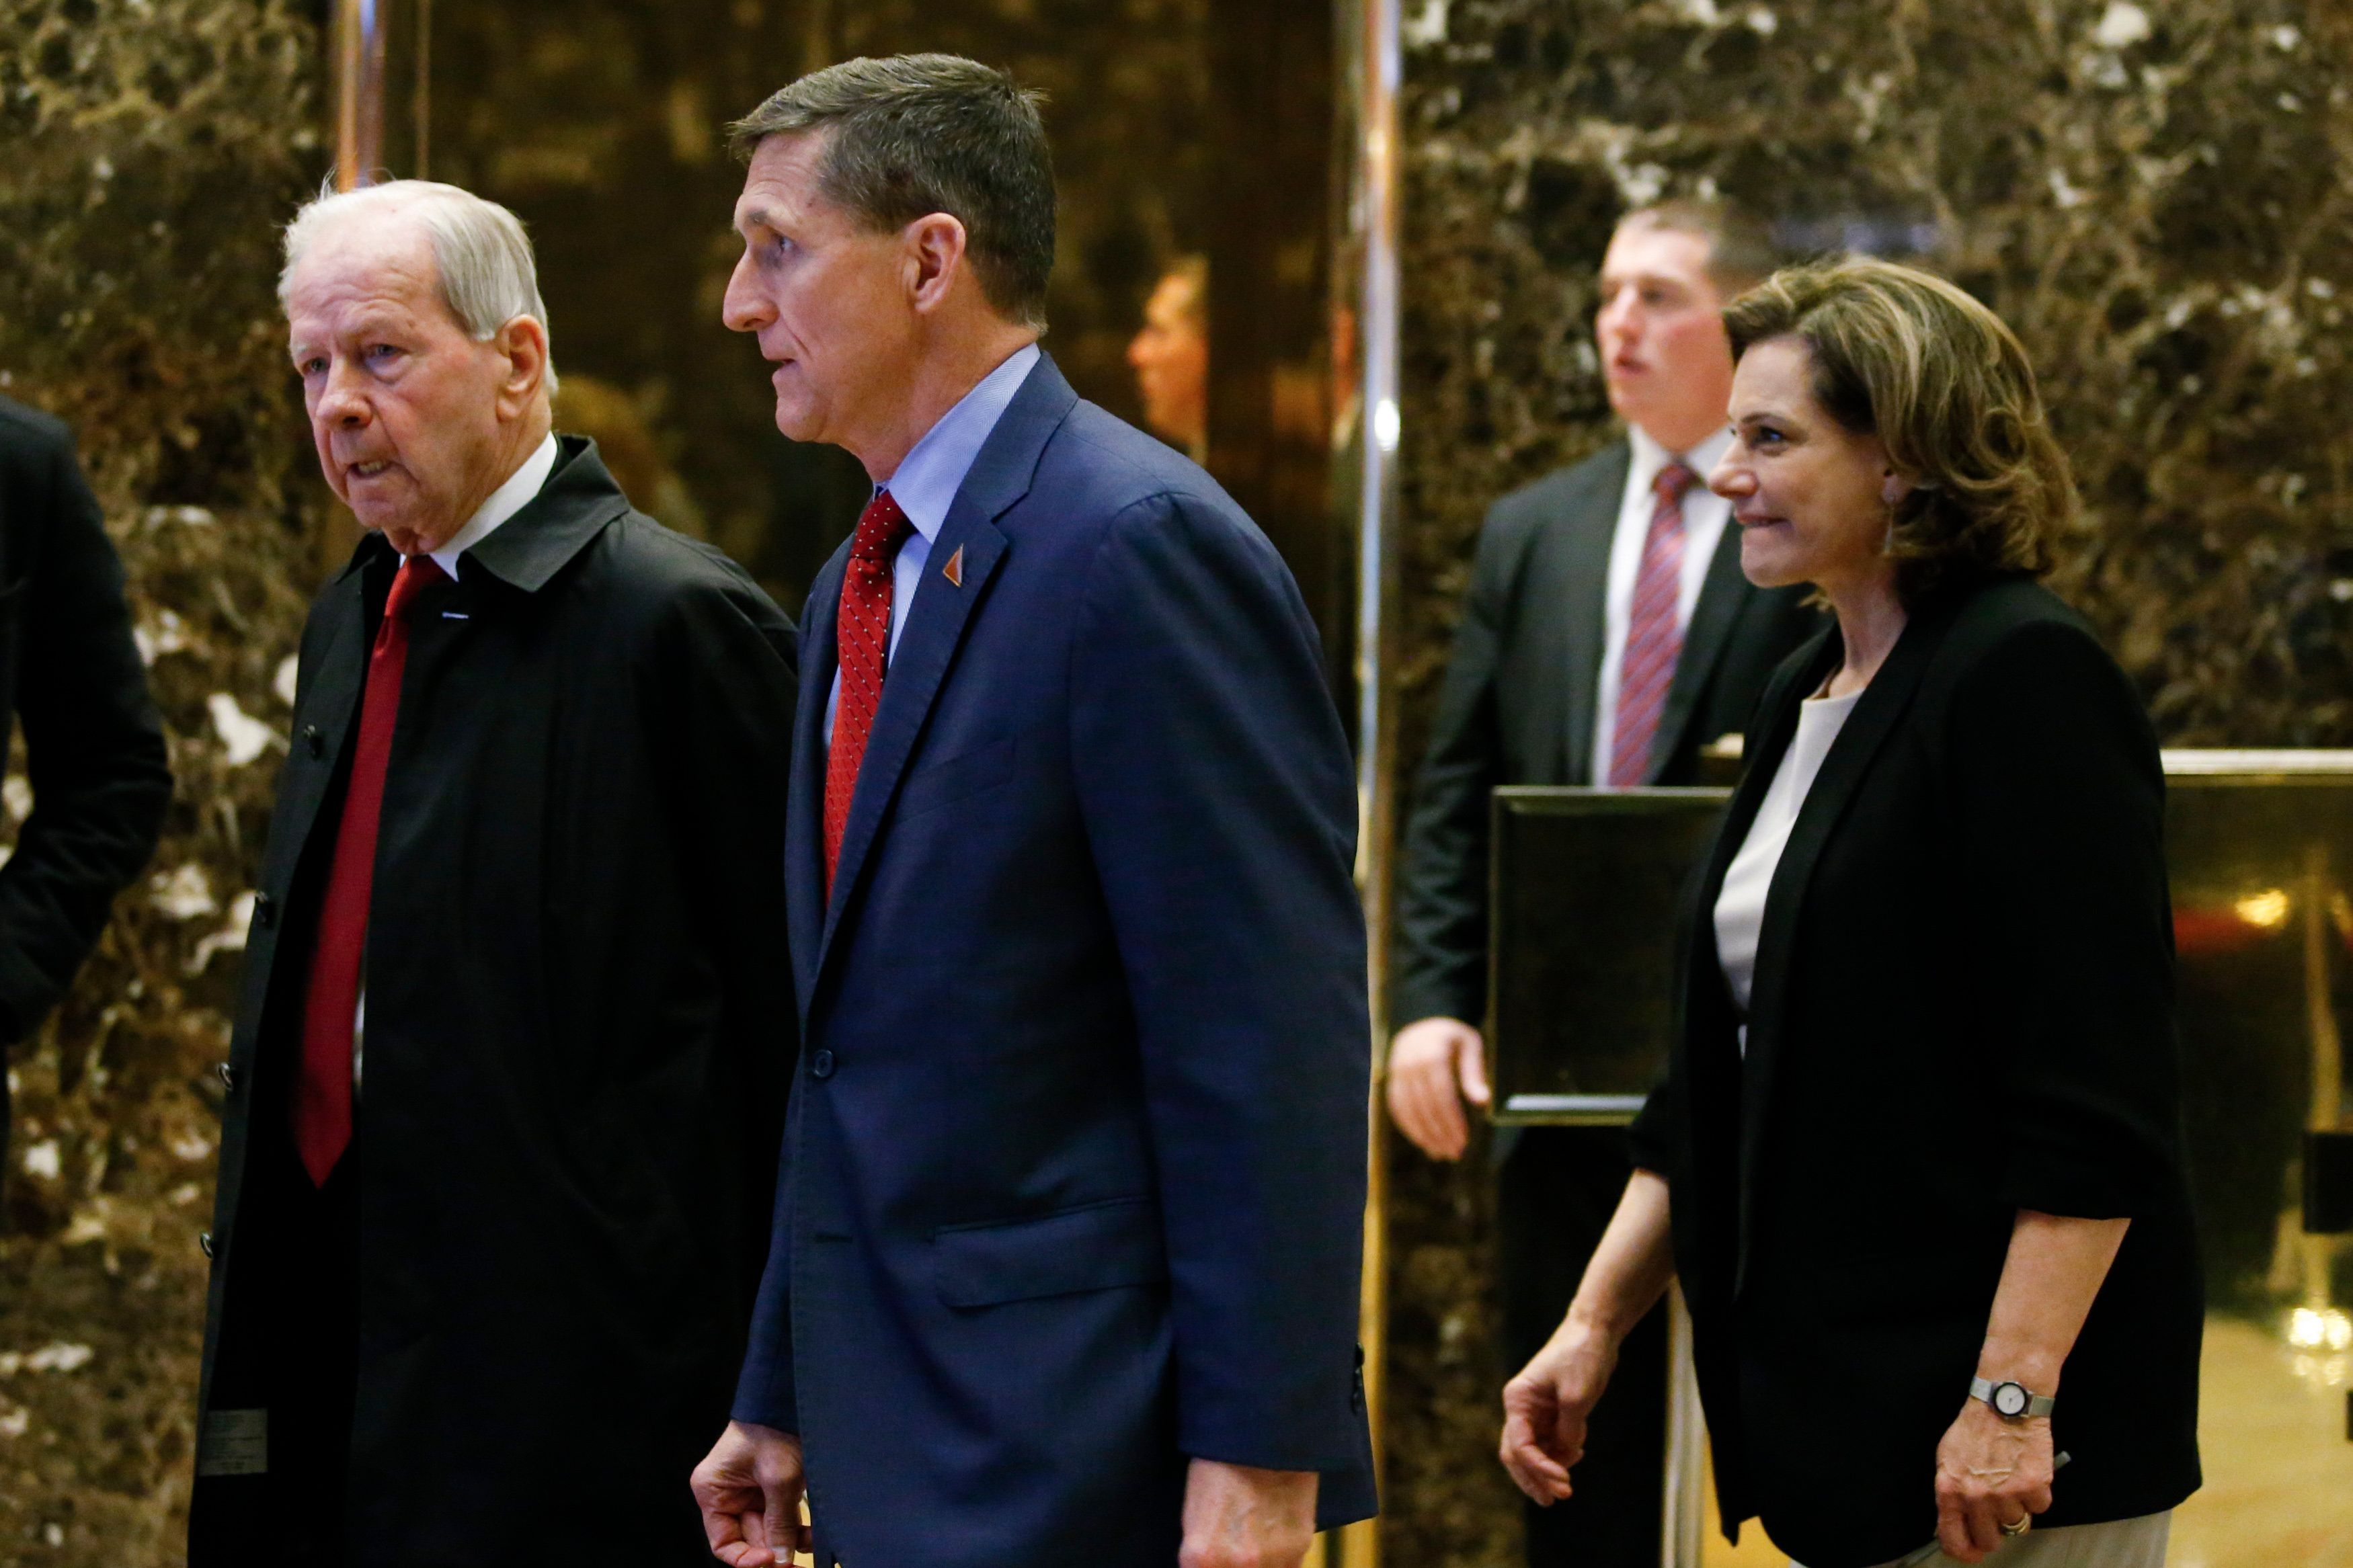 Robert. C. 'Bud' McFarlane, Michael Flynn and KT McFarland walk in the lobby at Trump Tower in New York on Dec. 5, 2016.